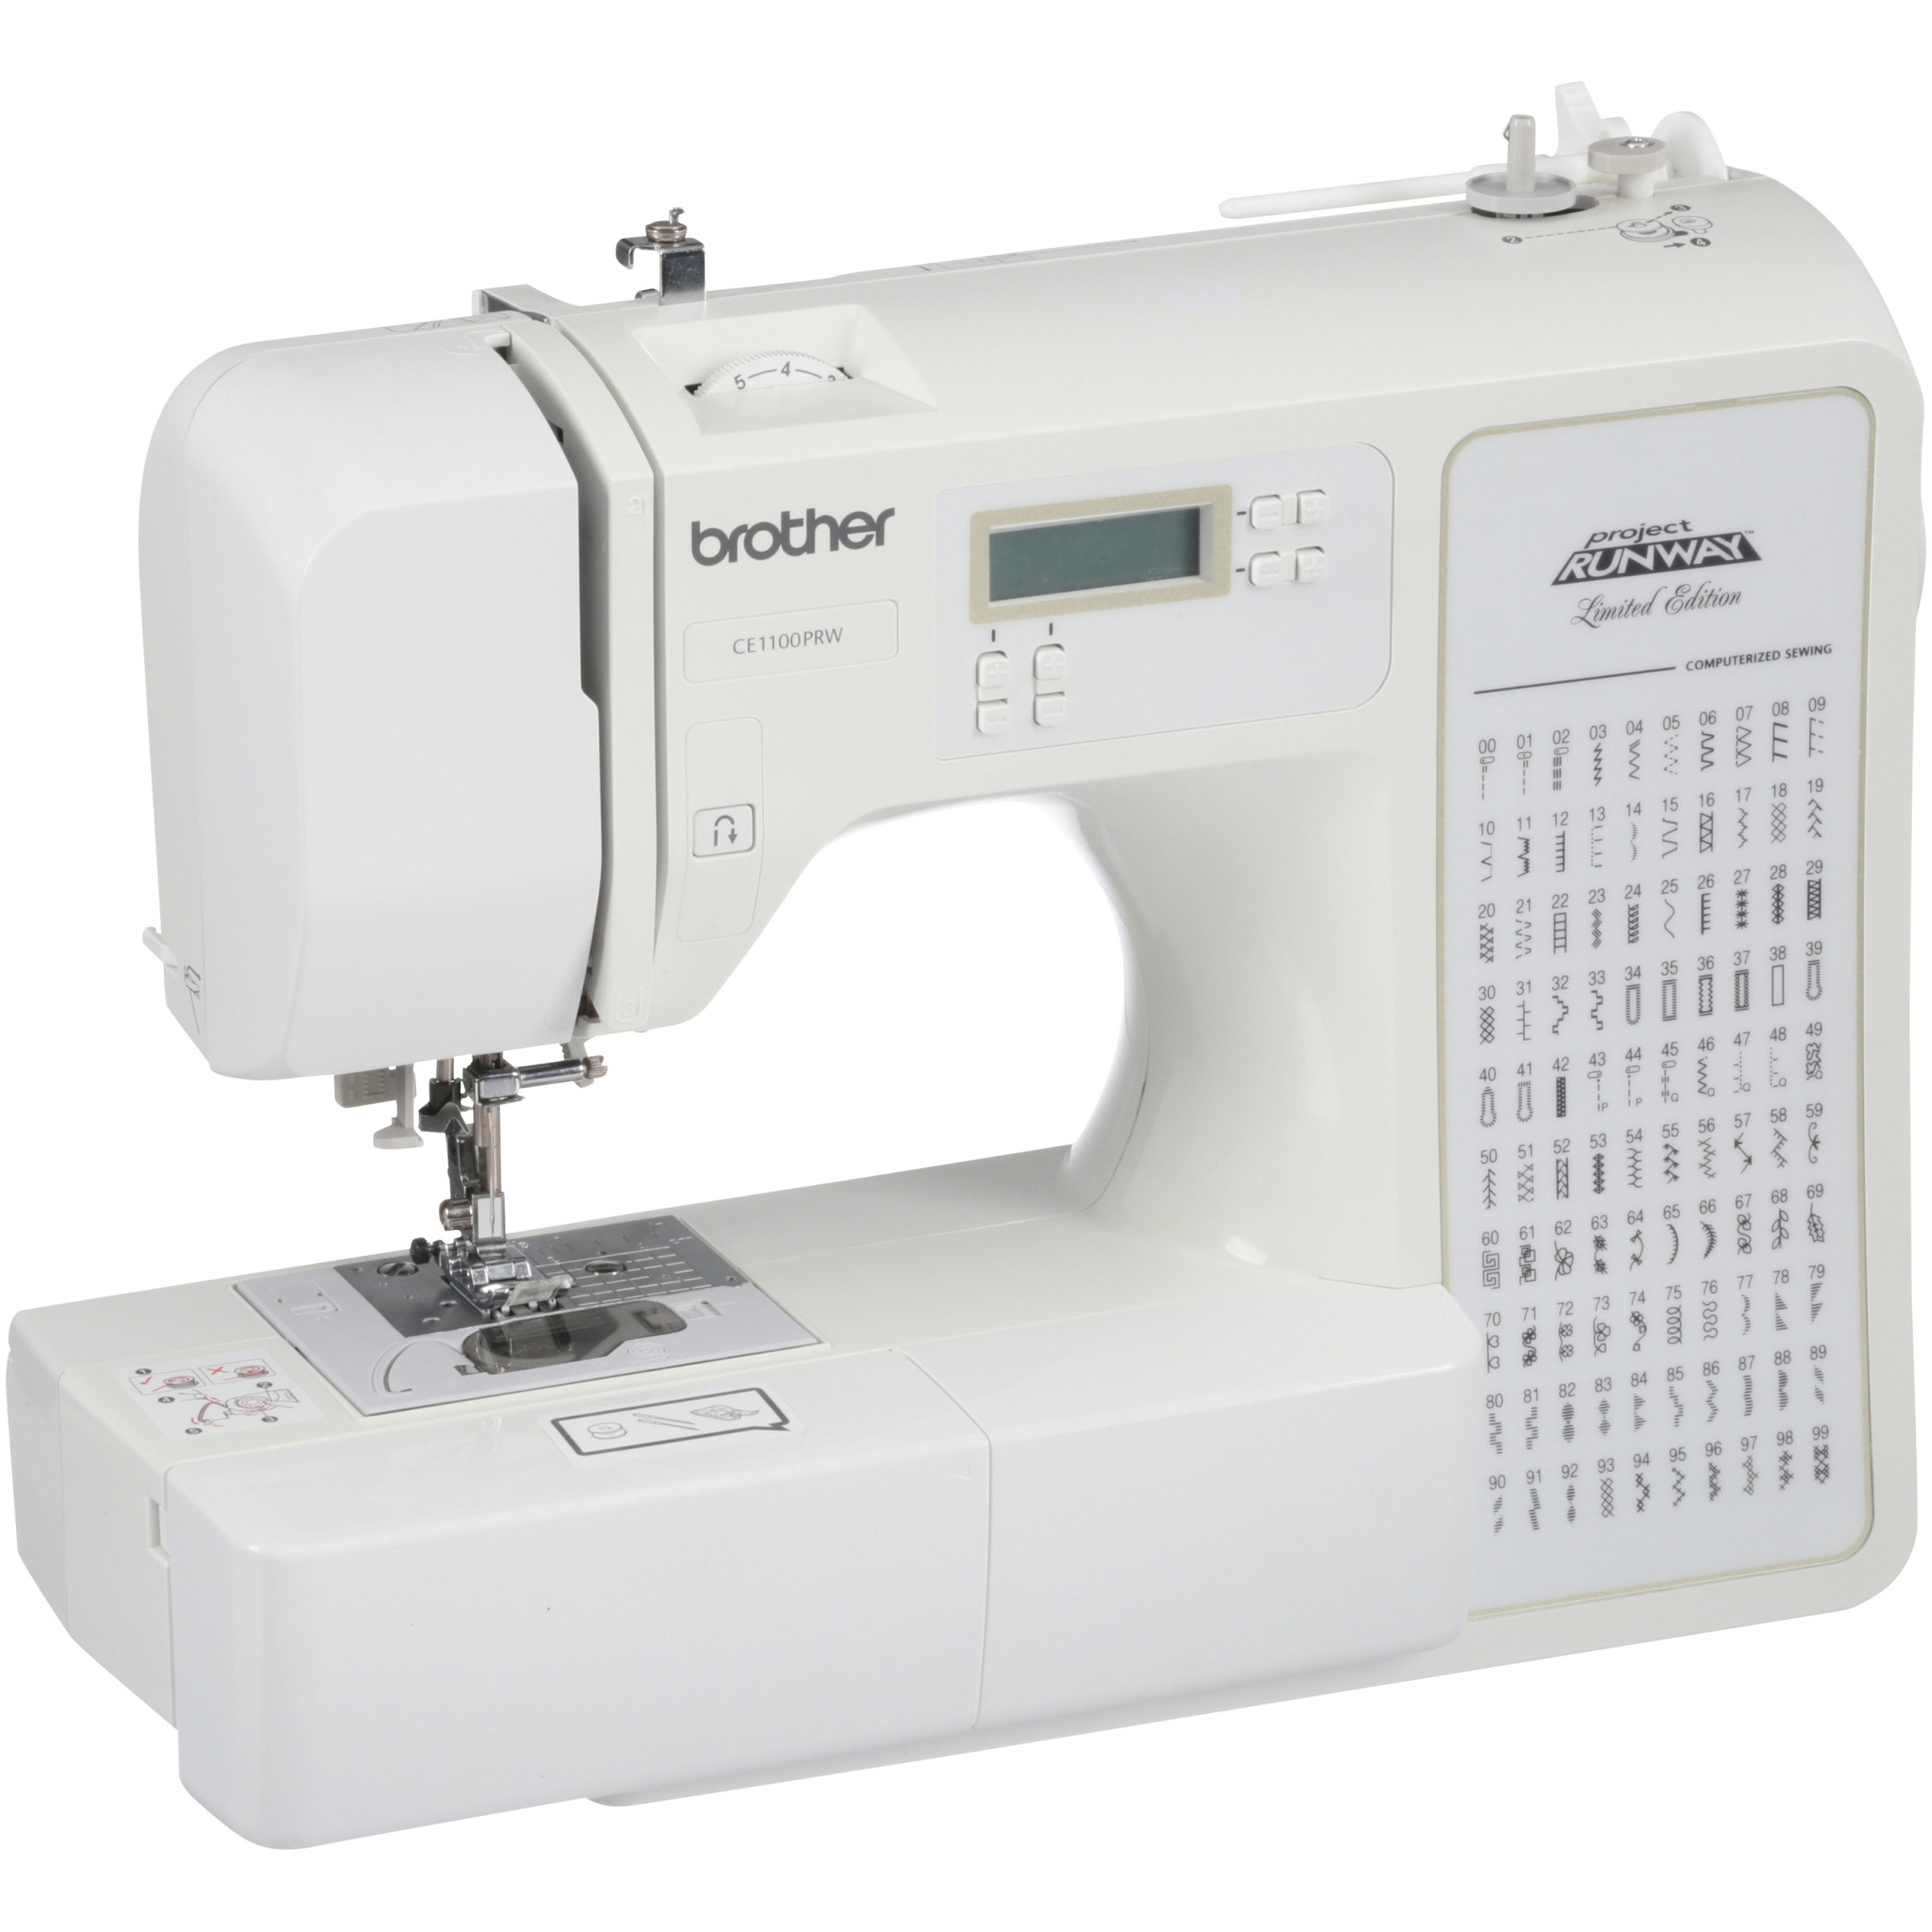 Refurbished Brother Project Runway Computerized Sewing Machine RCE1100PRW 100 Stitches